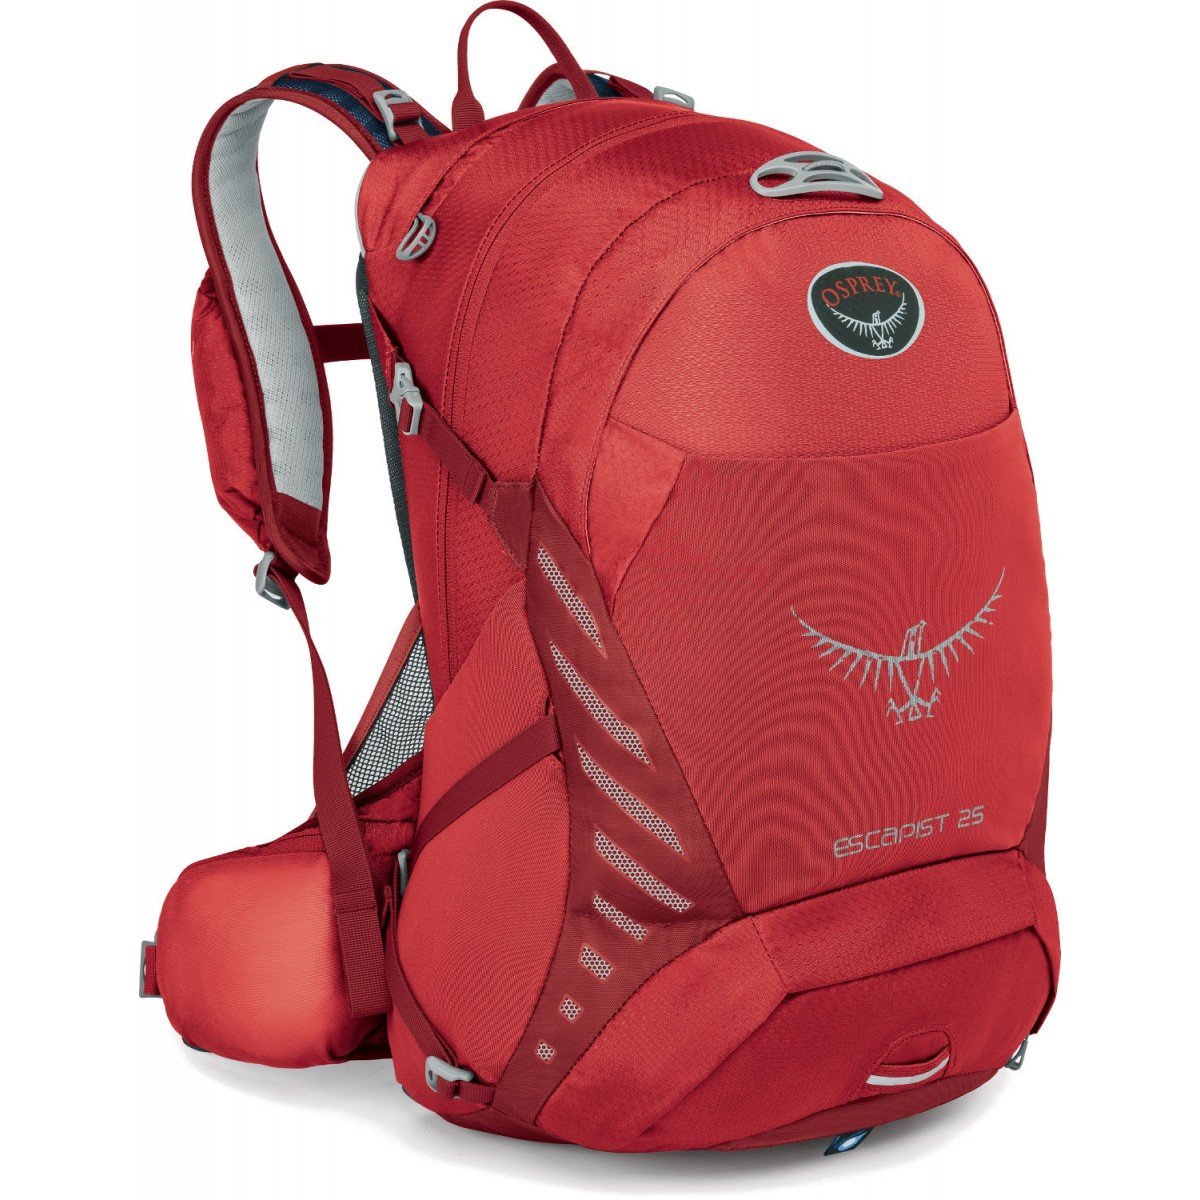 Рюкзак Osprey Escapist 25 Cayenne Red 009.0272